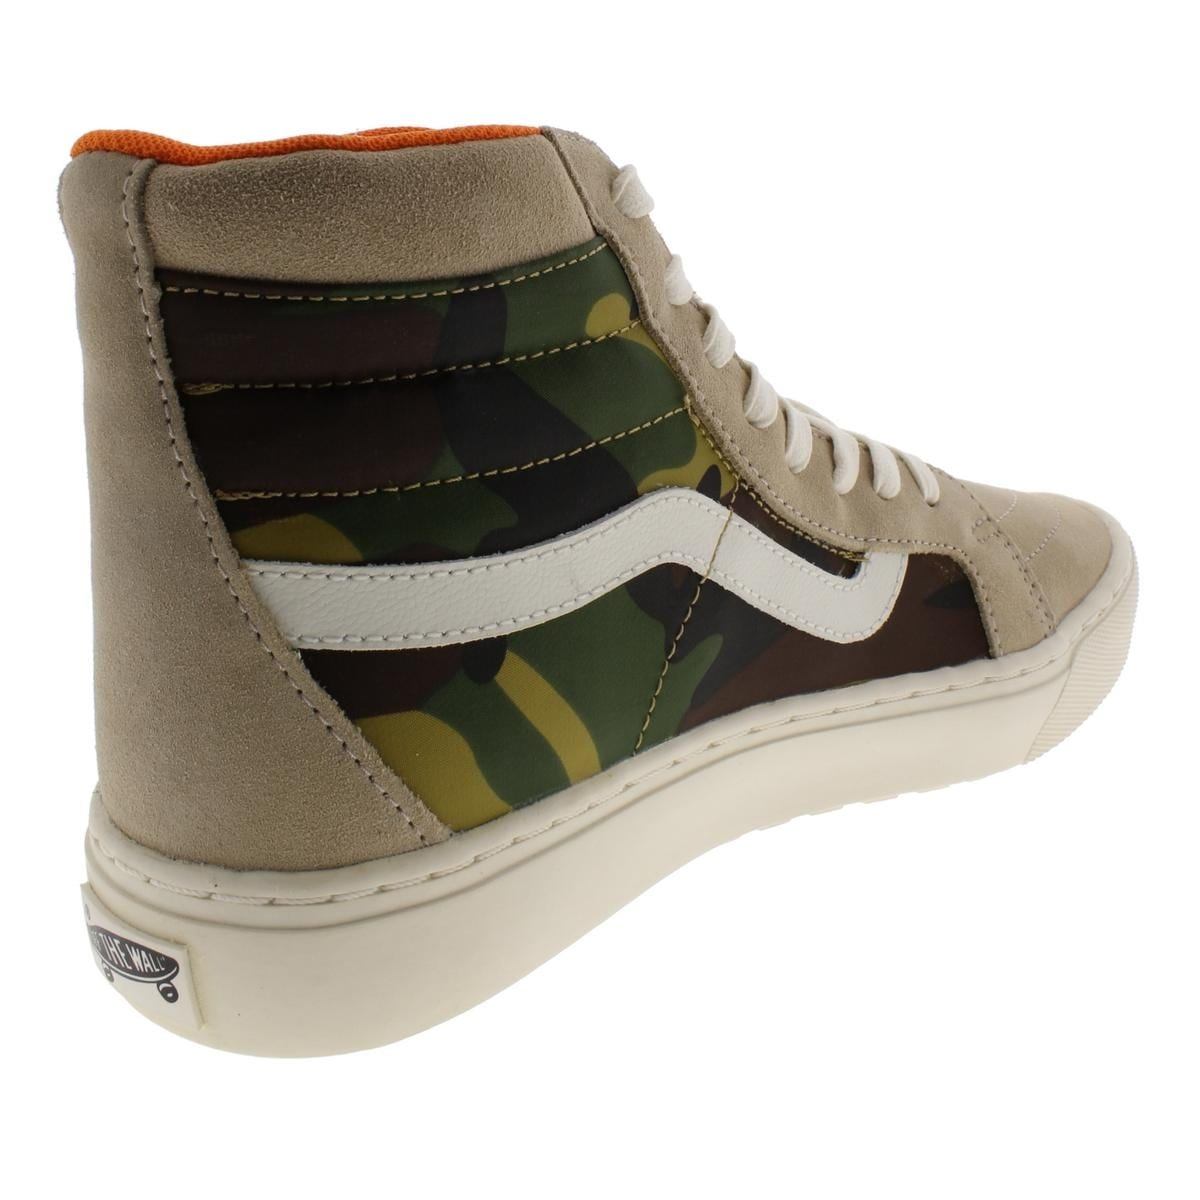 4cbef18b32167f Shop Vans Mens Sk8-Hi MTE Cup LX High Top Sneakers Suede Camouflage - Free  Shipping Today - Overstock - 27876274